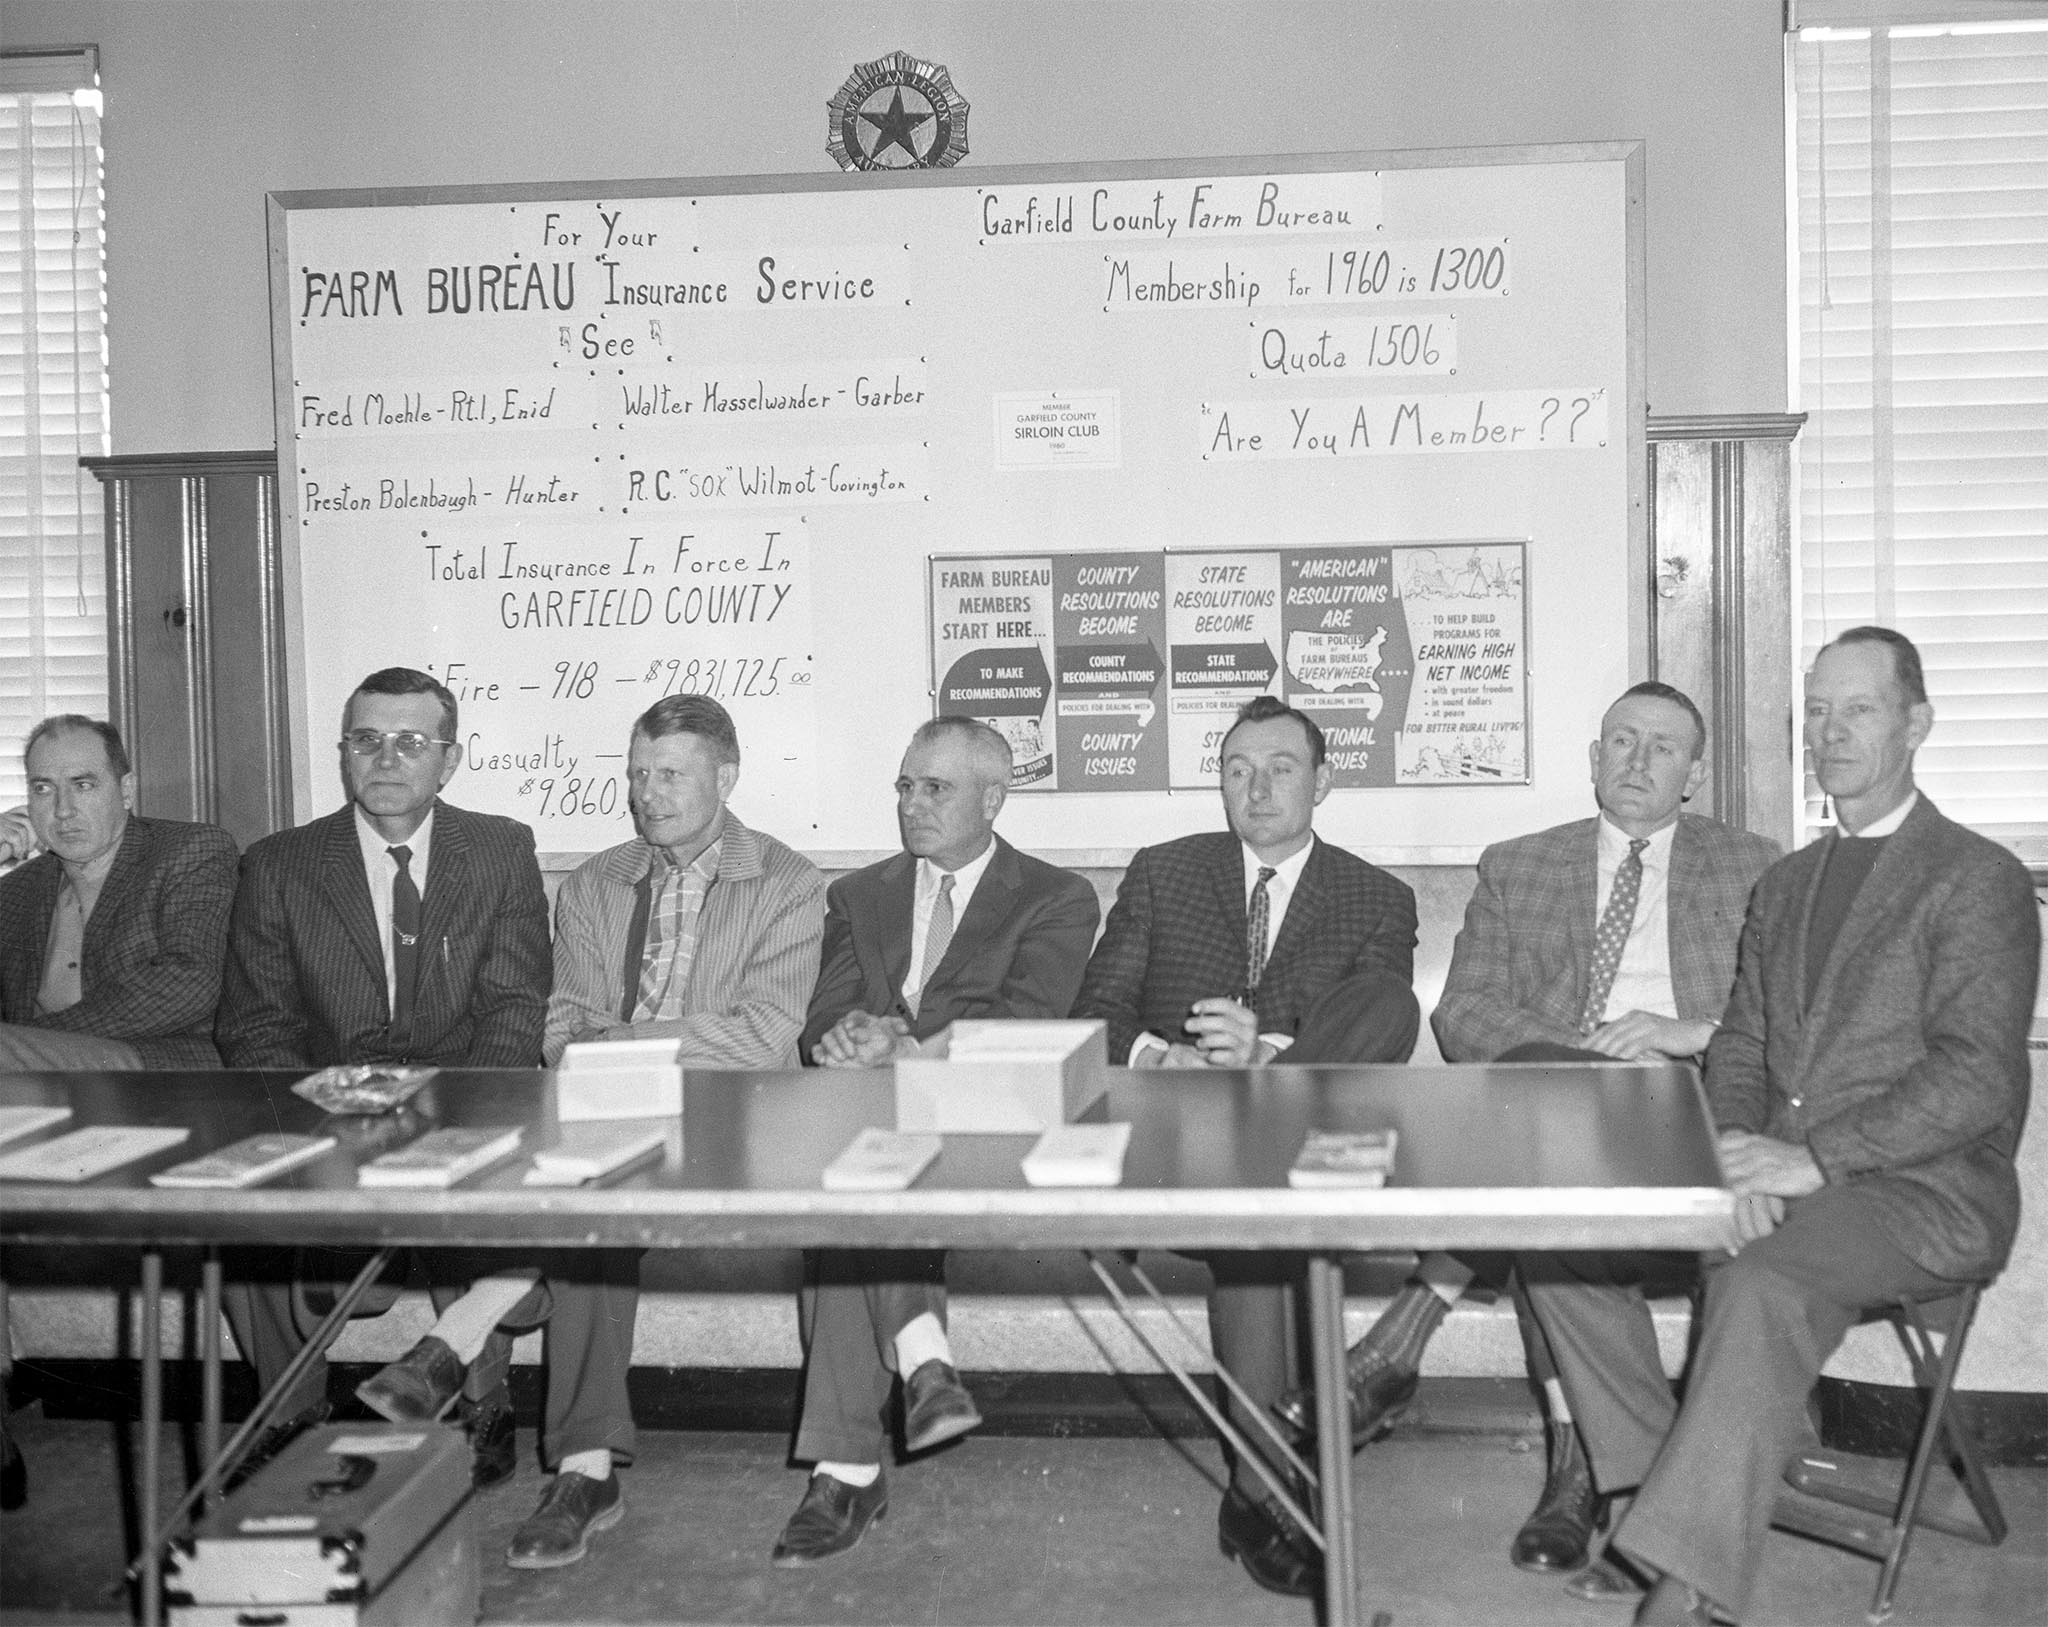 This booth was kept by the members of Garfield County Farm Bureau at a crop and soils clinic in Enid in 1960. Pencils, rulers and leaflets were given to all who passed by the booth. About 600 people attended the event.